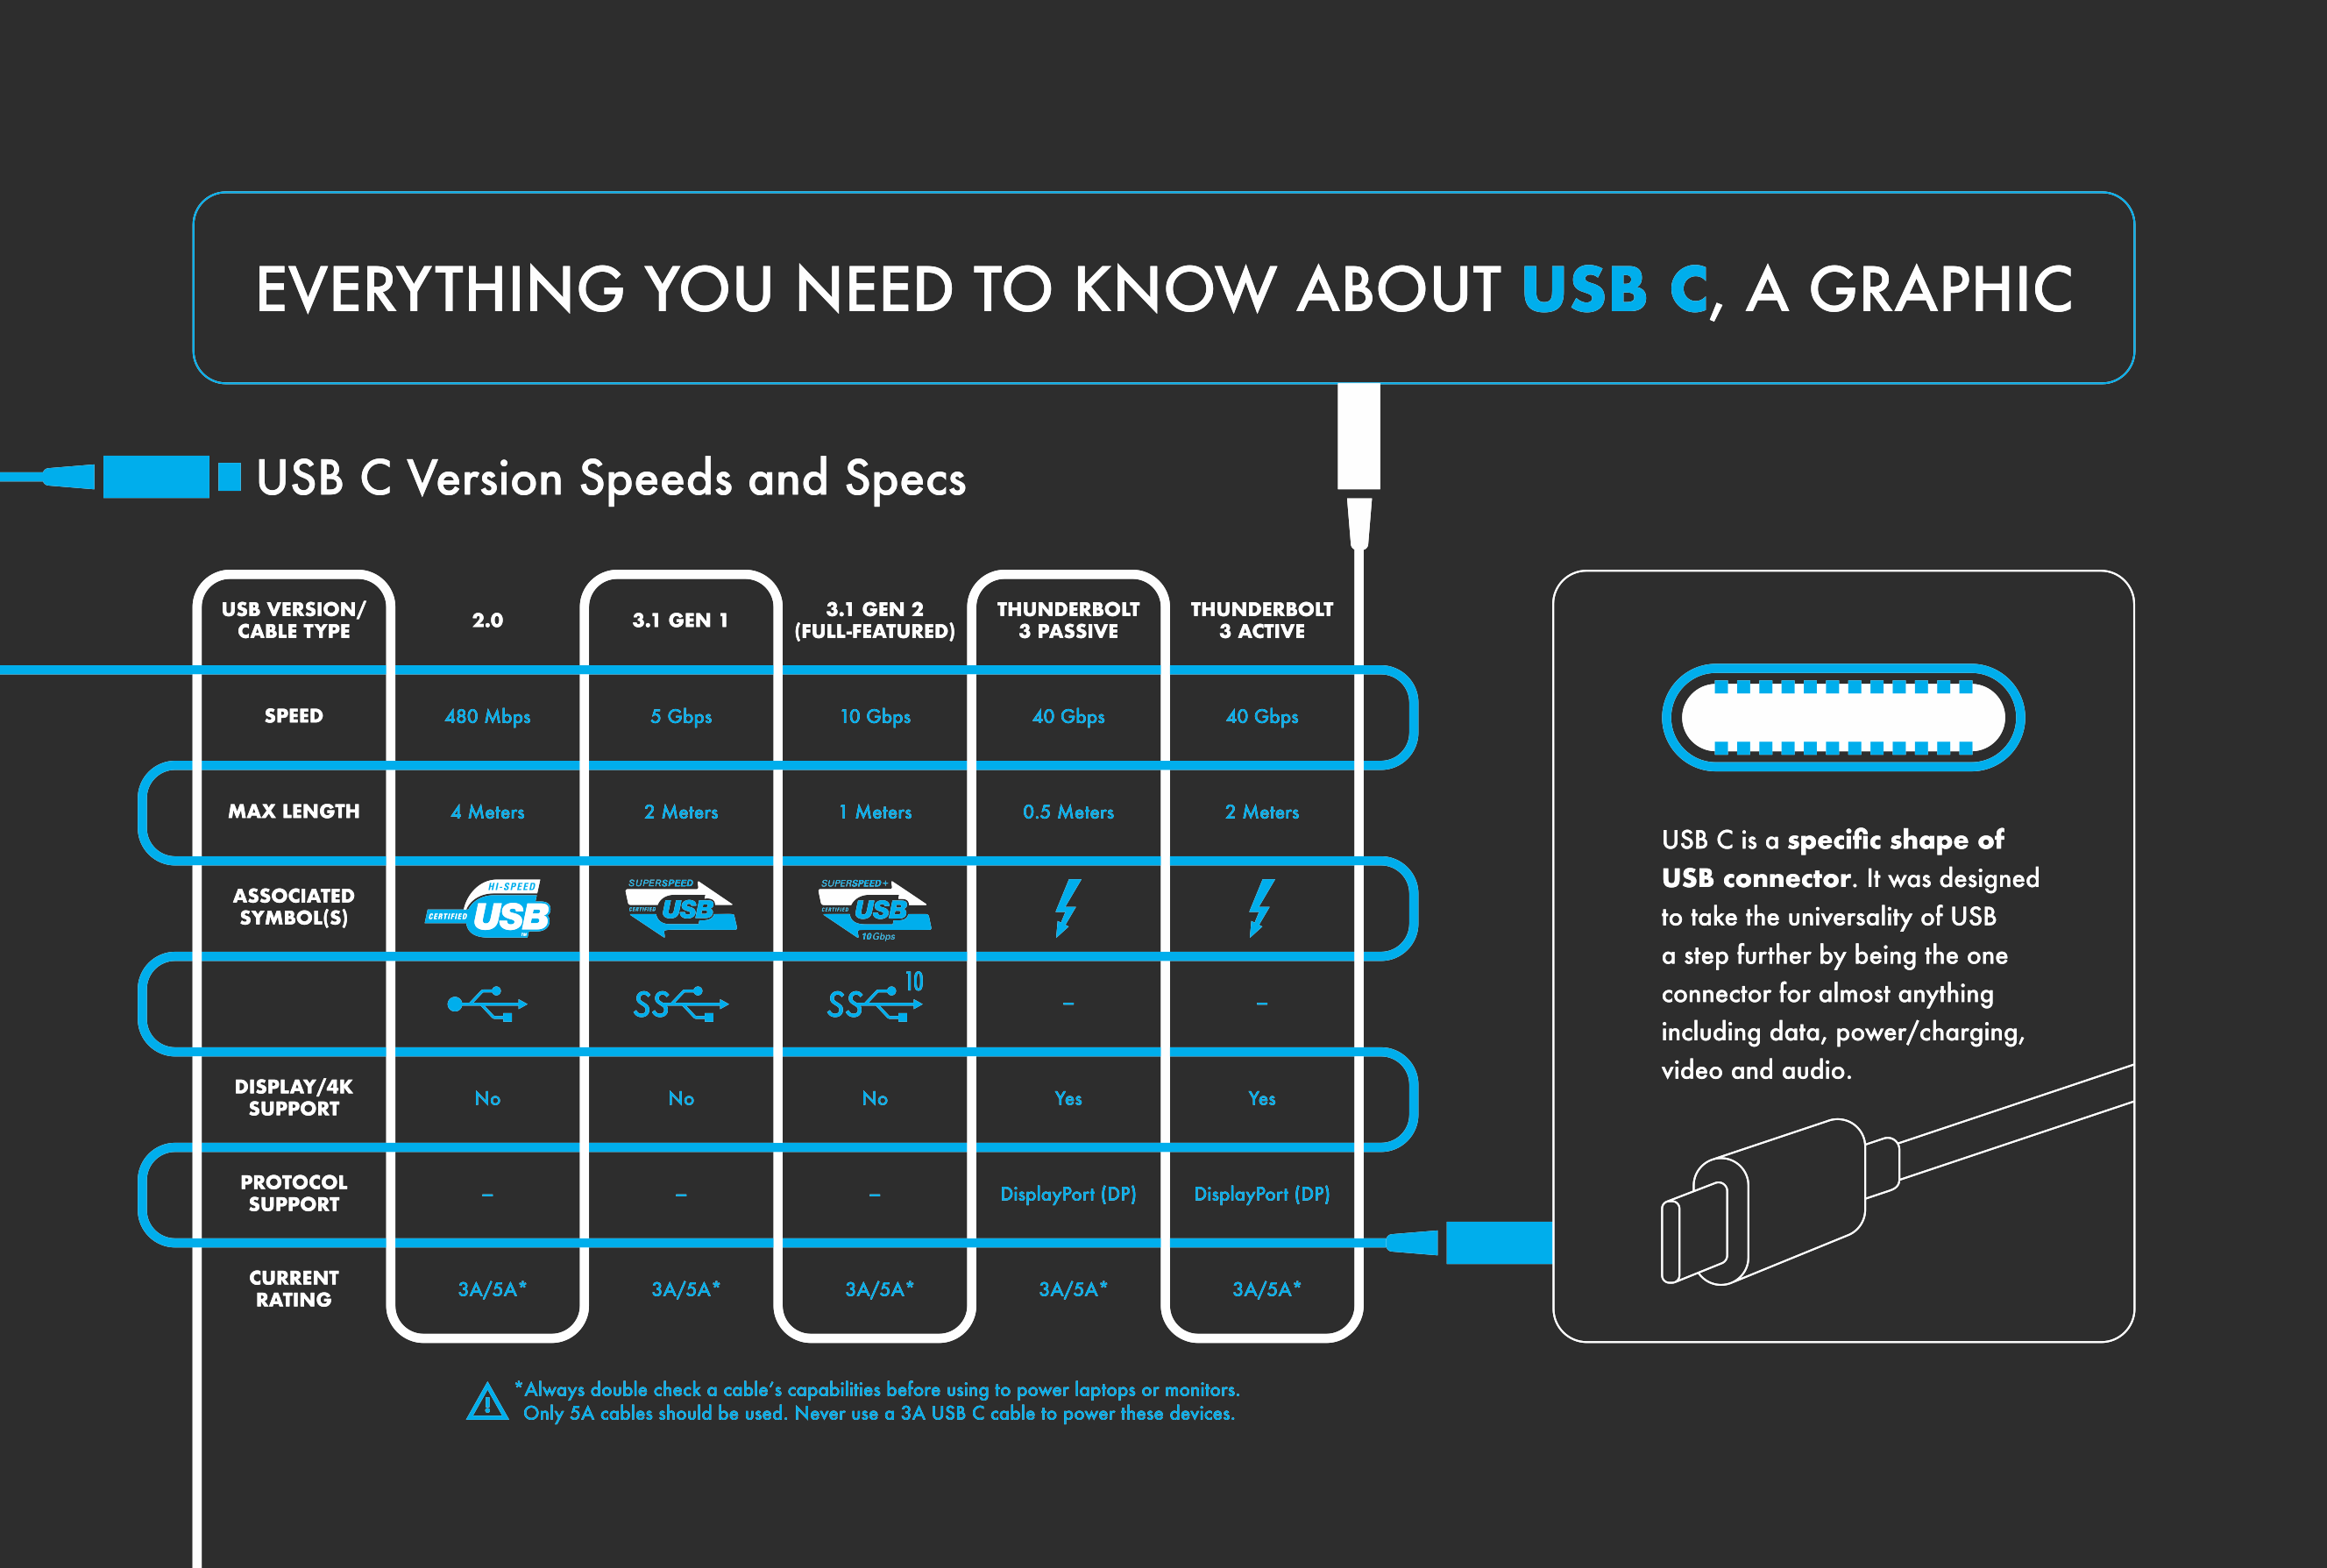 components_adafruit_USB_C_graphic_outlines.png